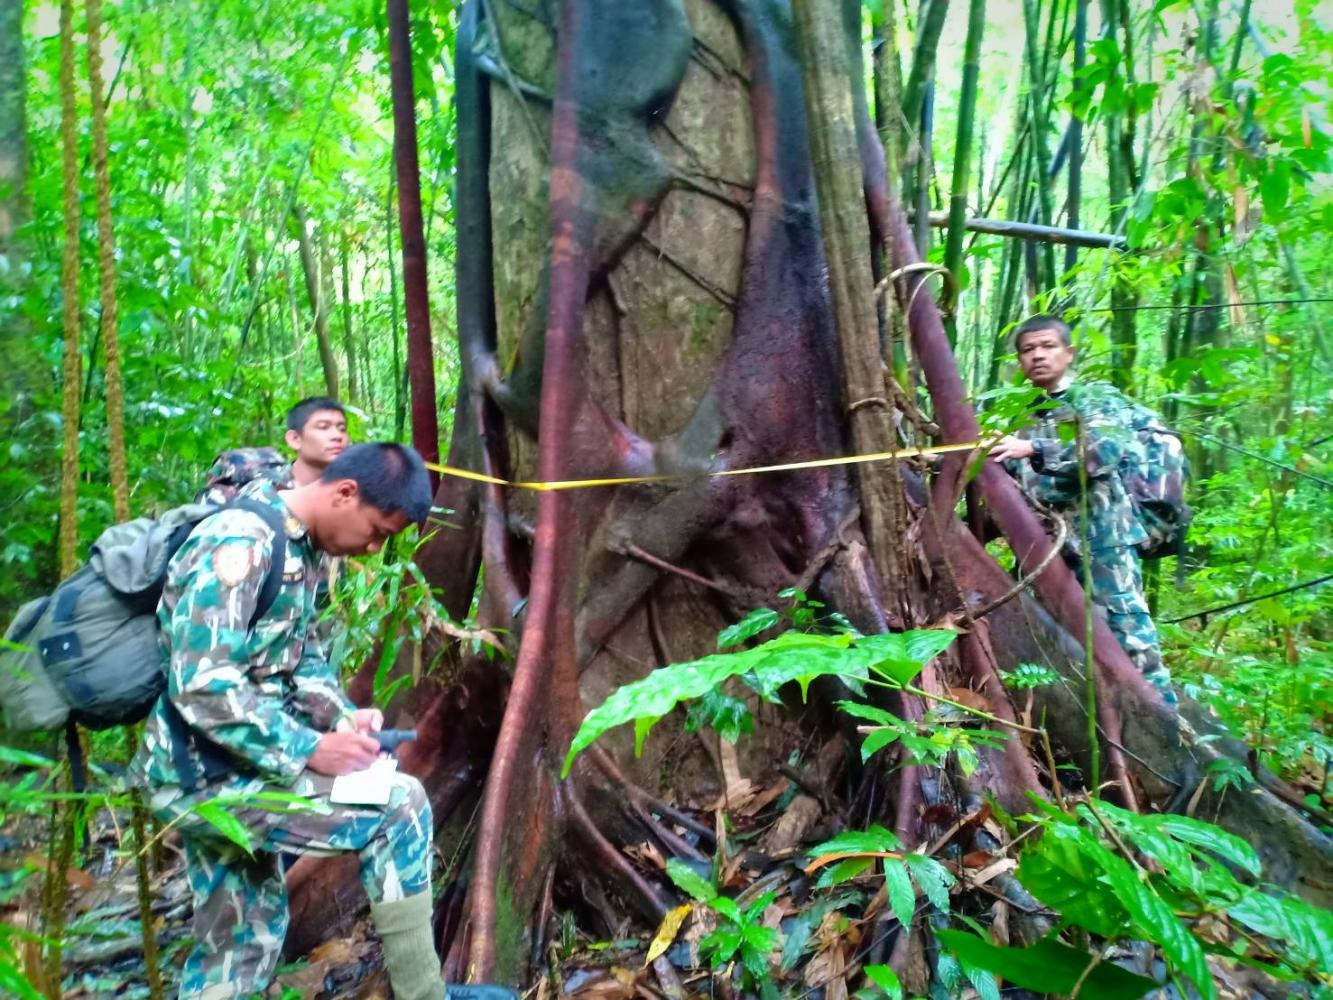 Rangers record the details of a giant tree in Khao Sok National Park in Surat Thani, The park is the location of a pilot project introducing 'smart forest patrolling'.(Photo by Department of National Parks, Wildlife And Plant Conservation)